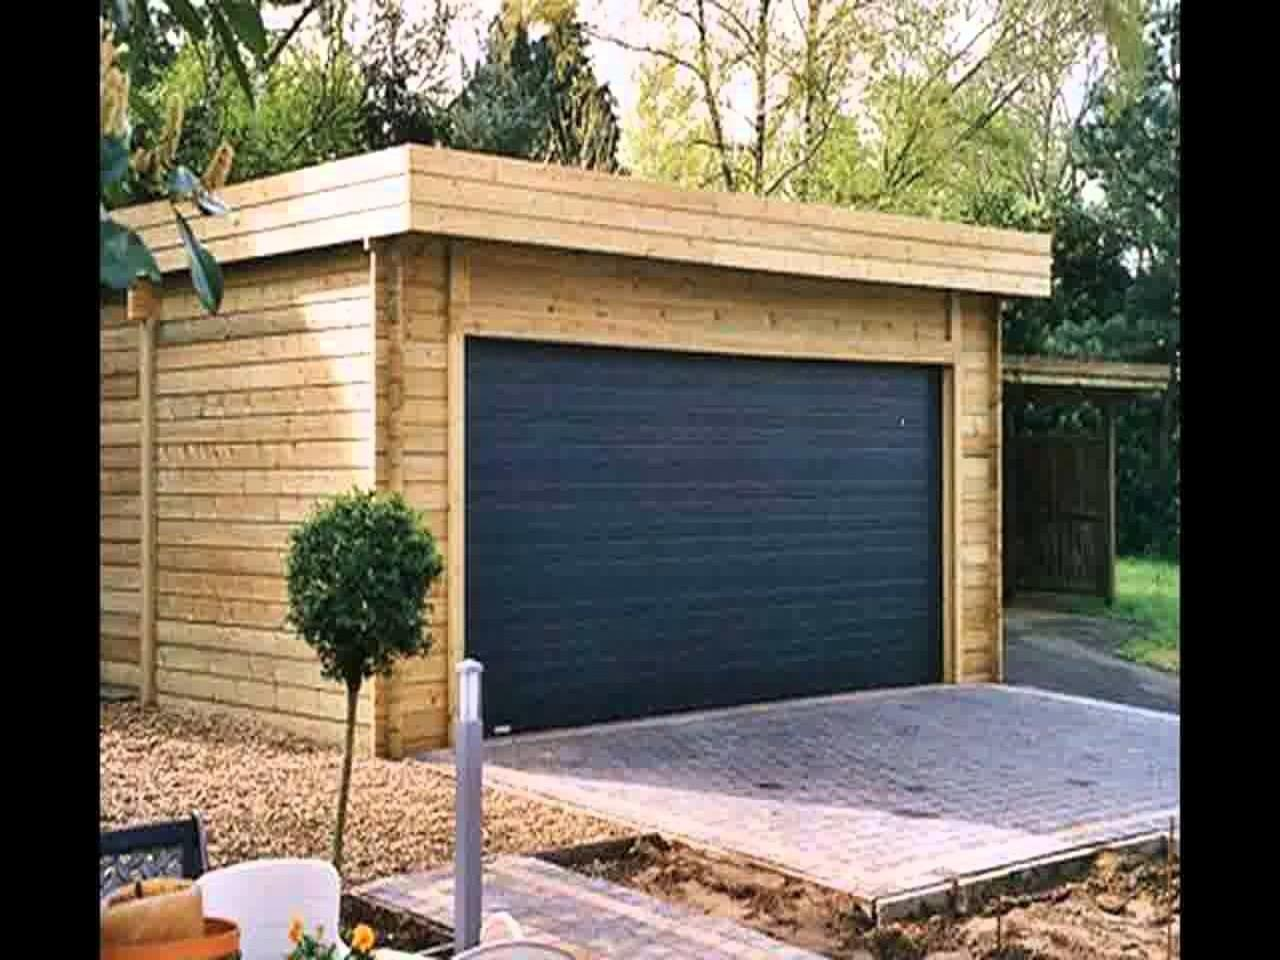 New Detached Garage Conversion Ideas